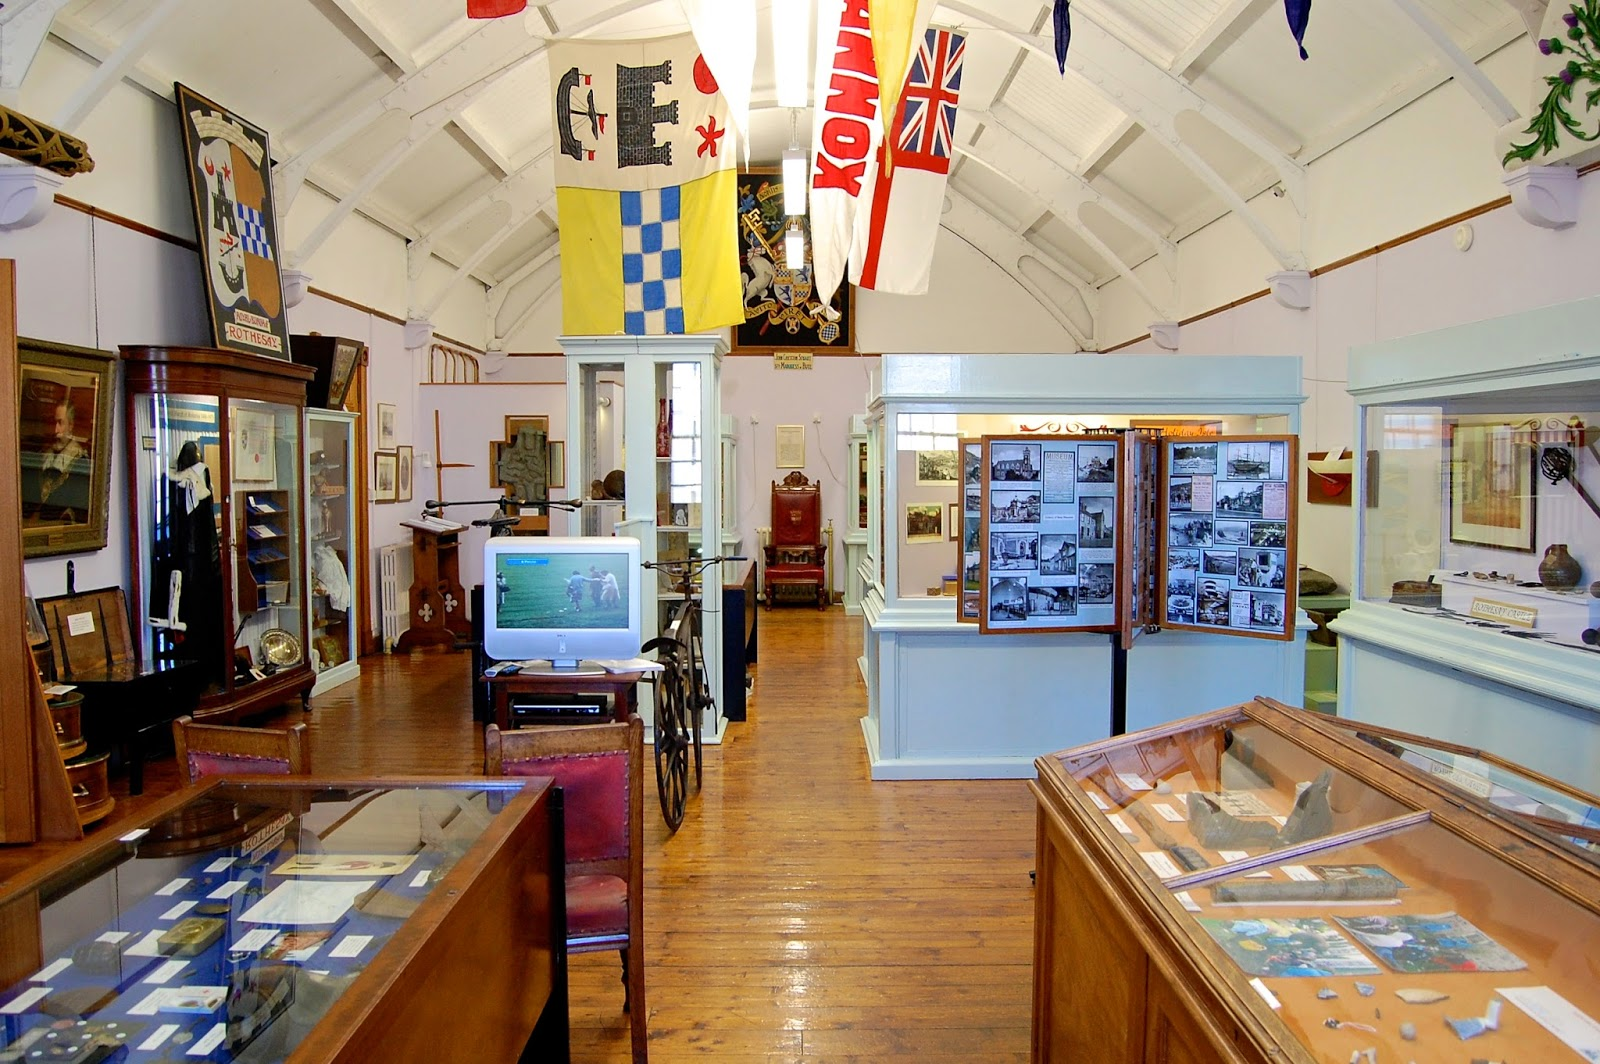 Bute Museum's cabinets of sundry curios